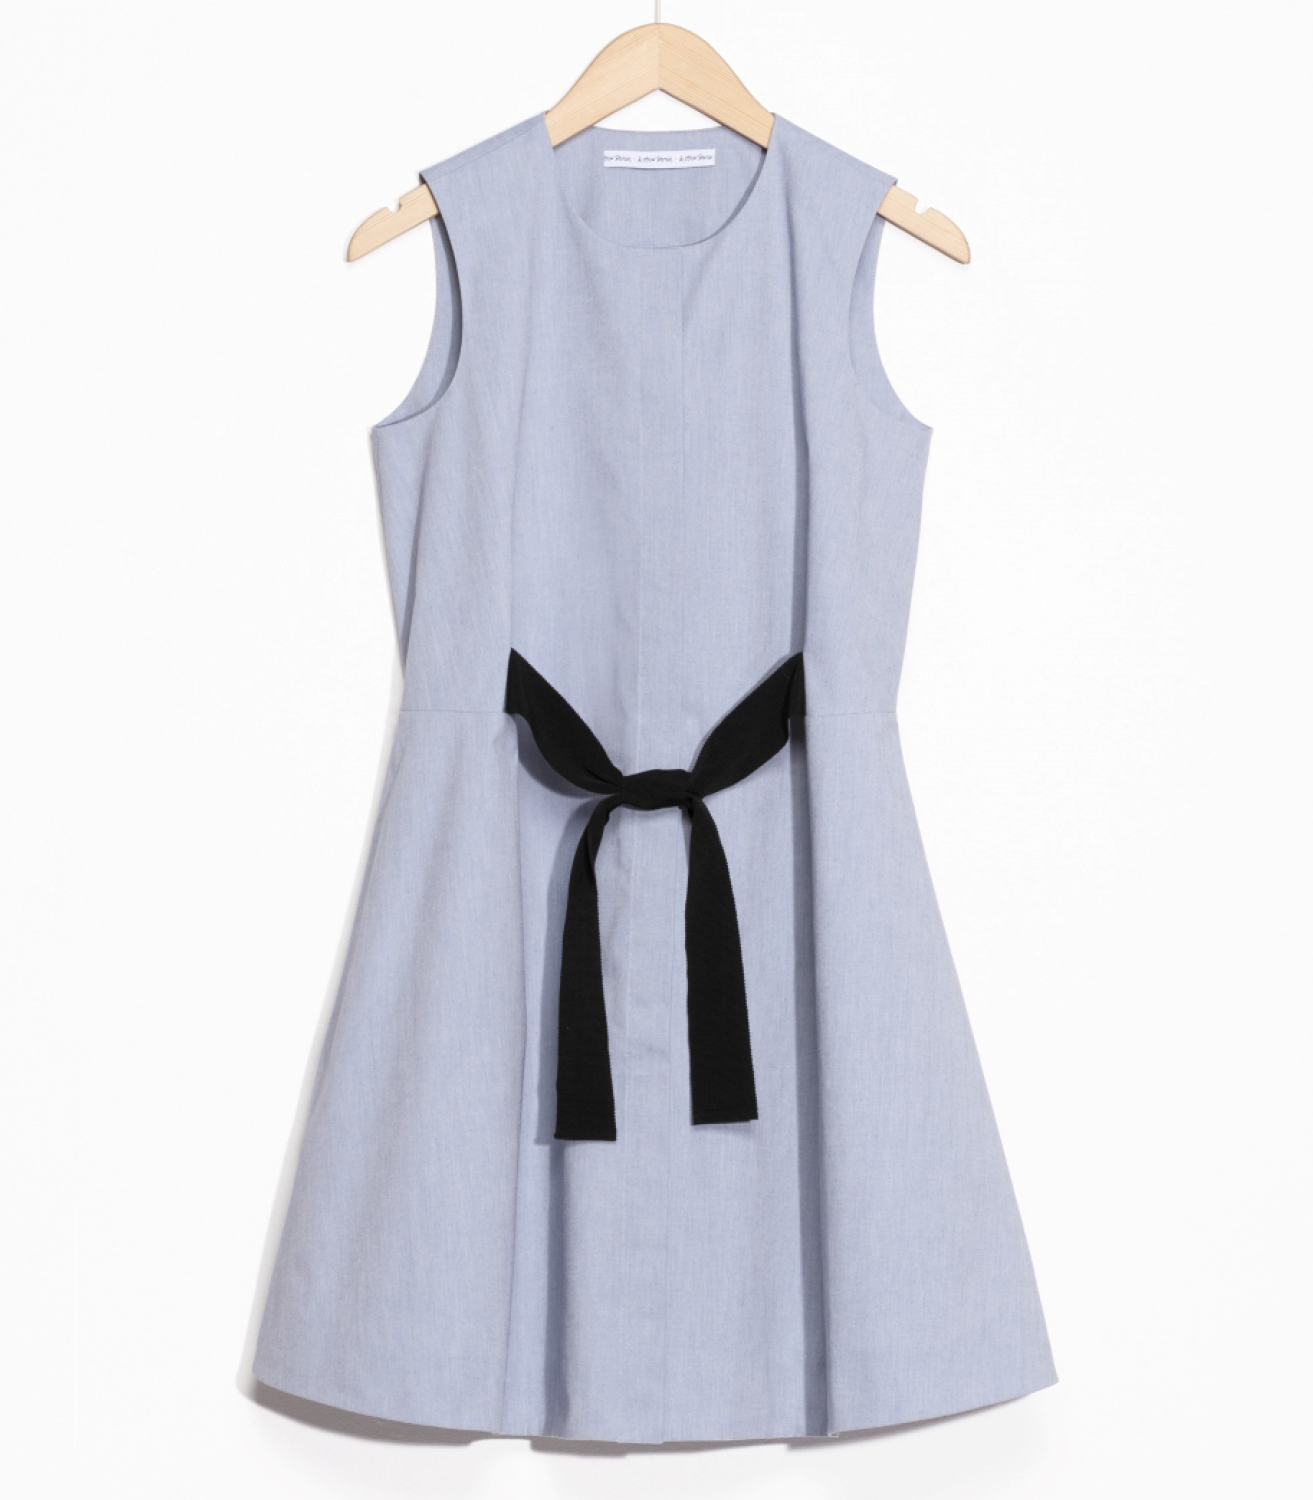 Buy & other stories Cotton Dress